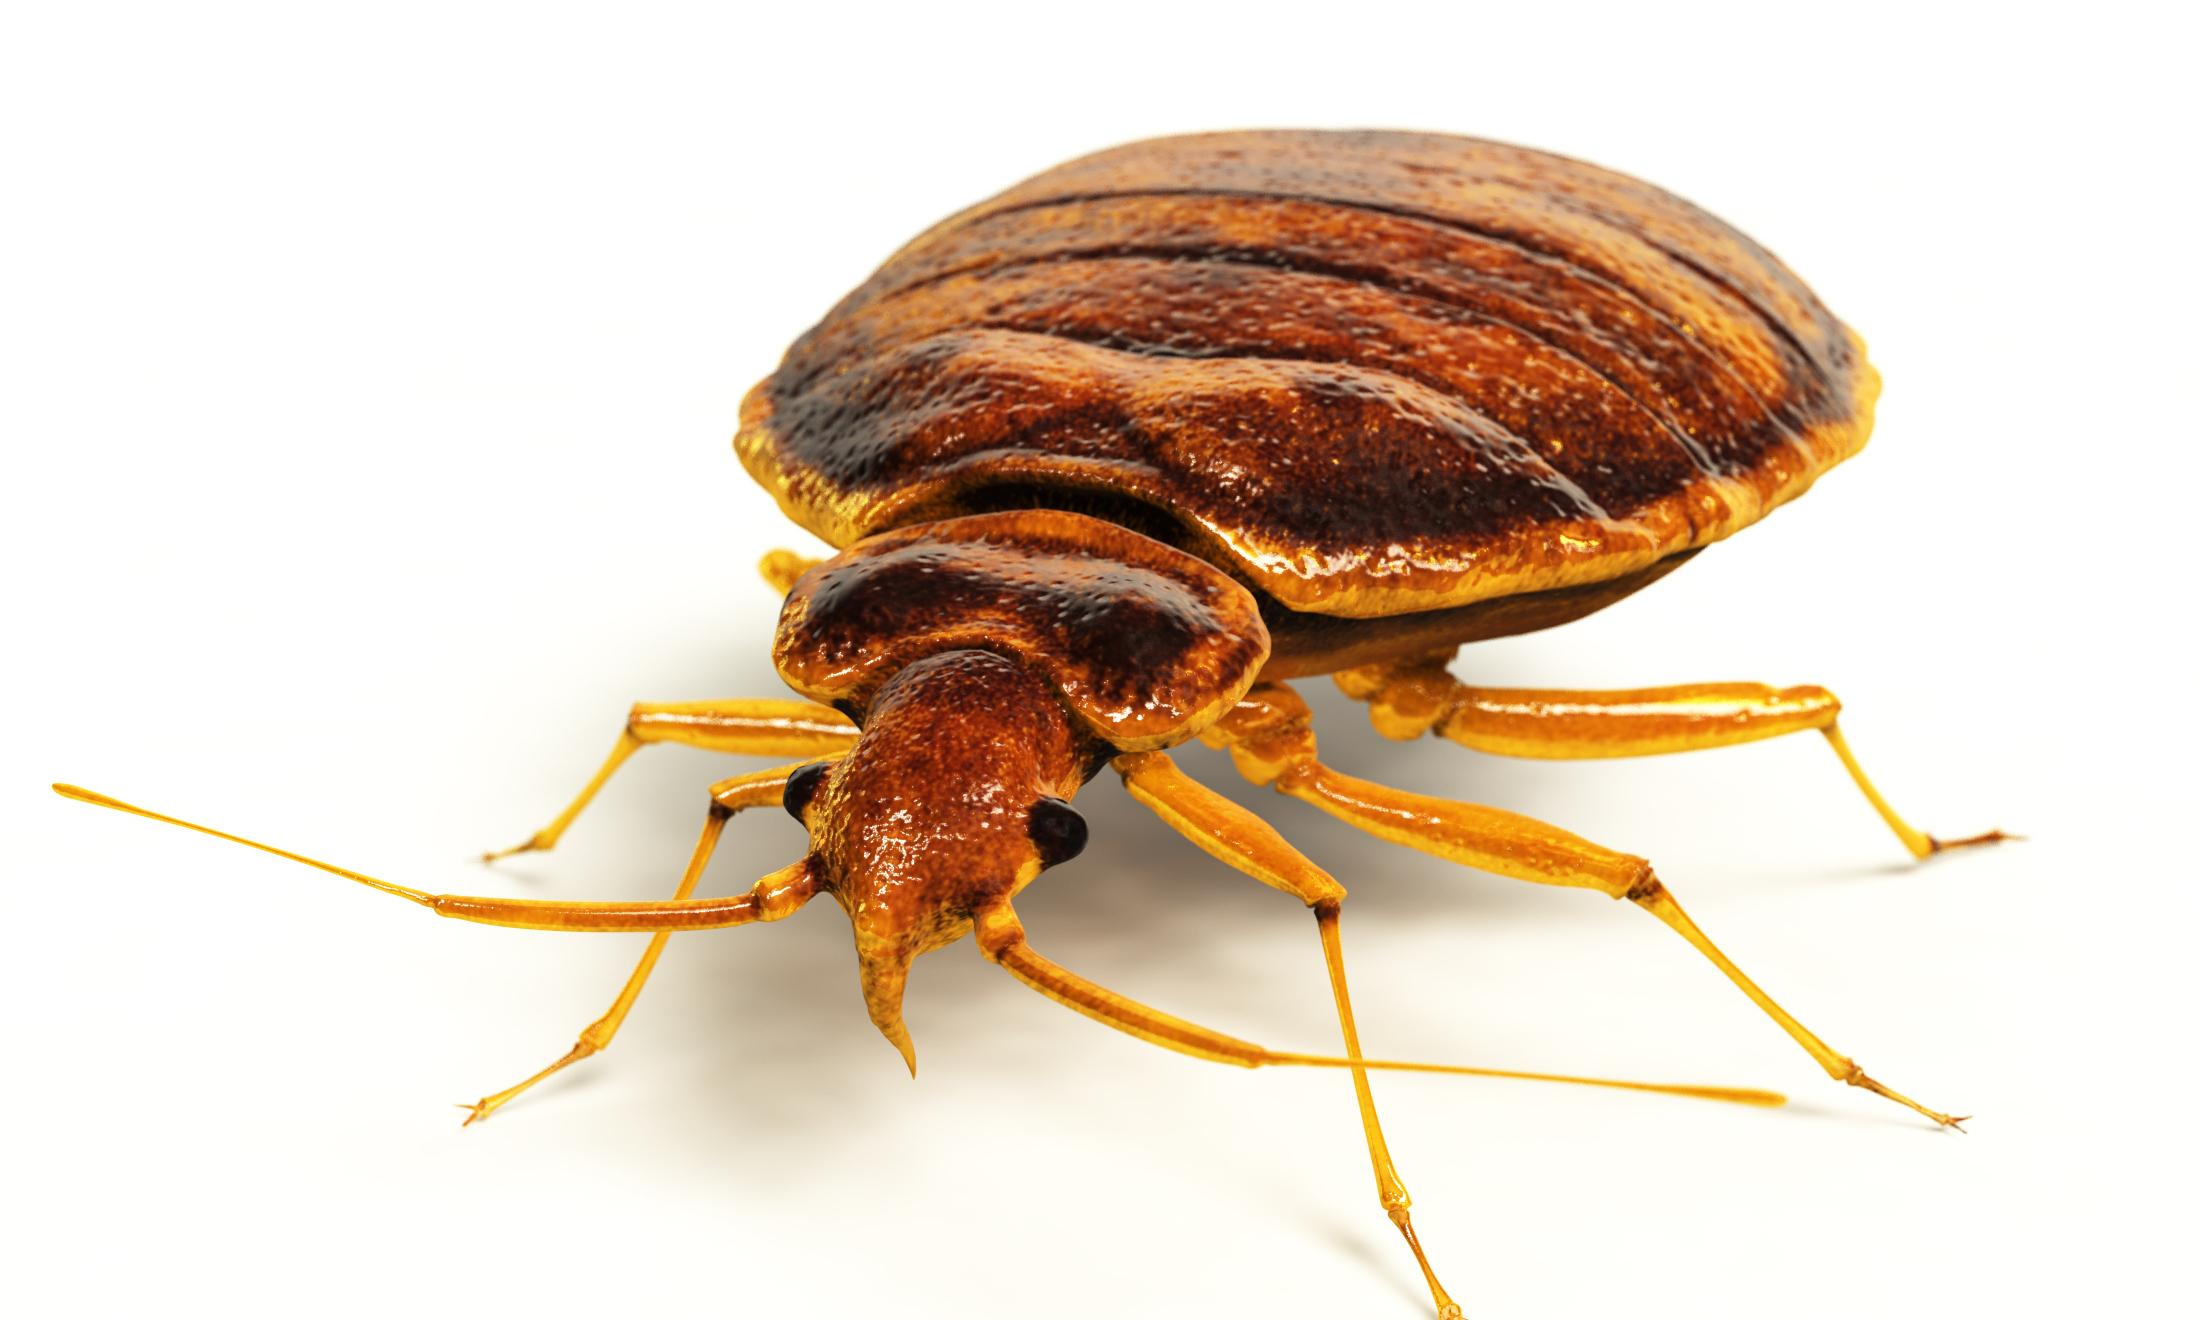 Bedbugs are tiny torturers that ruin lives – no wonder Bret Stephens was upset